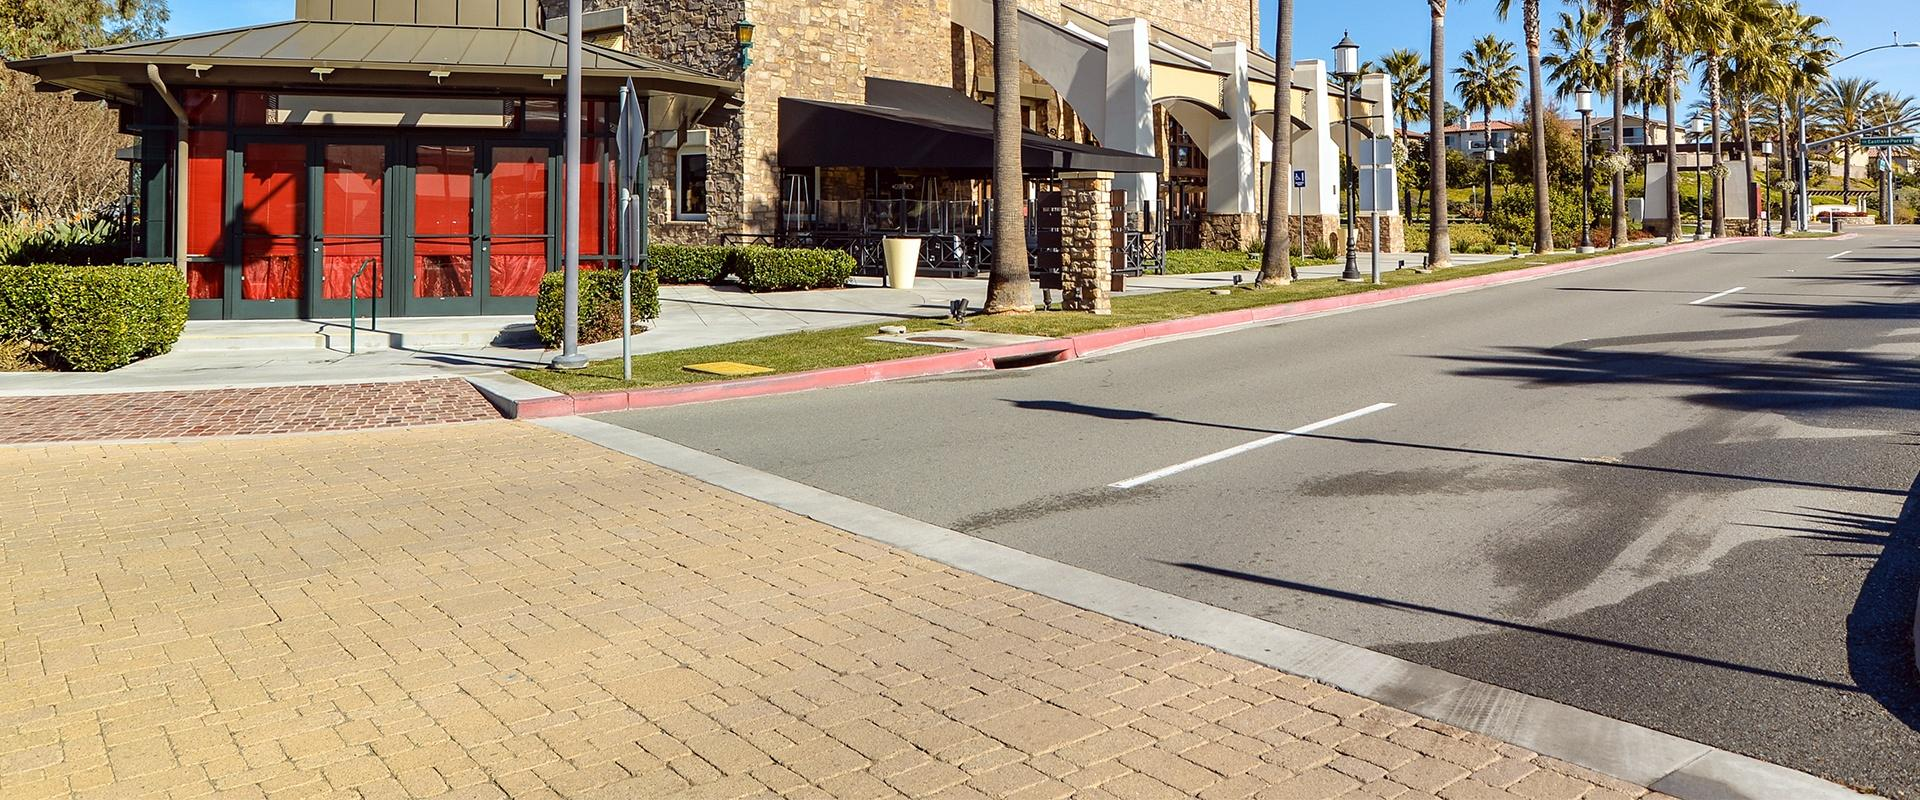 street view of a commercial plaza in modesto california